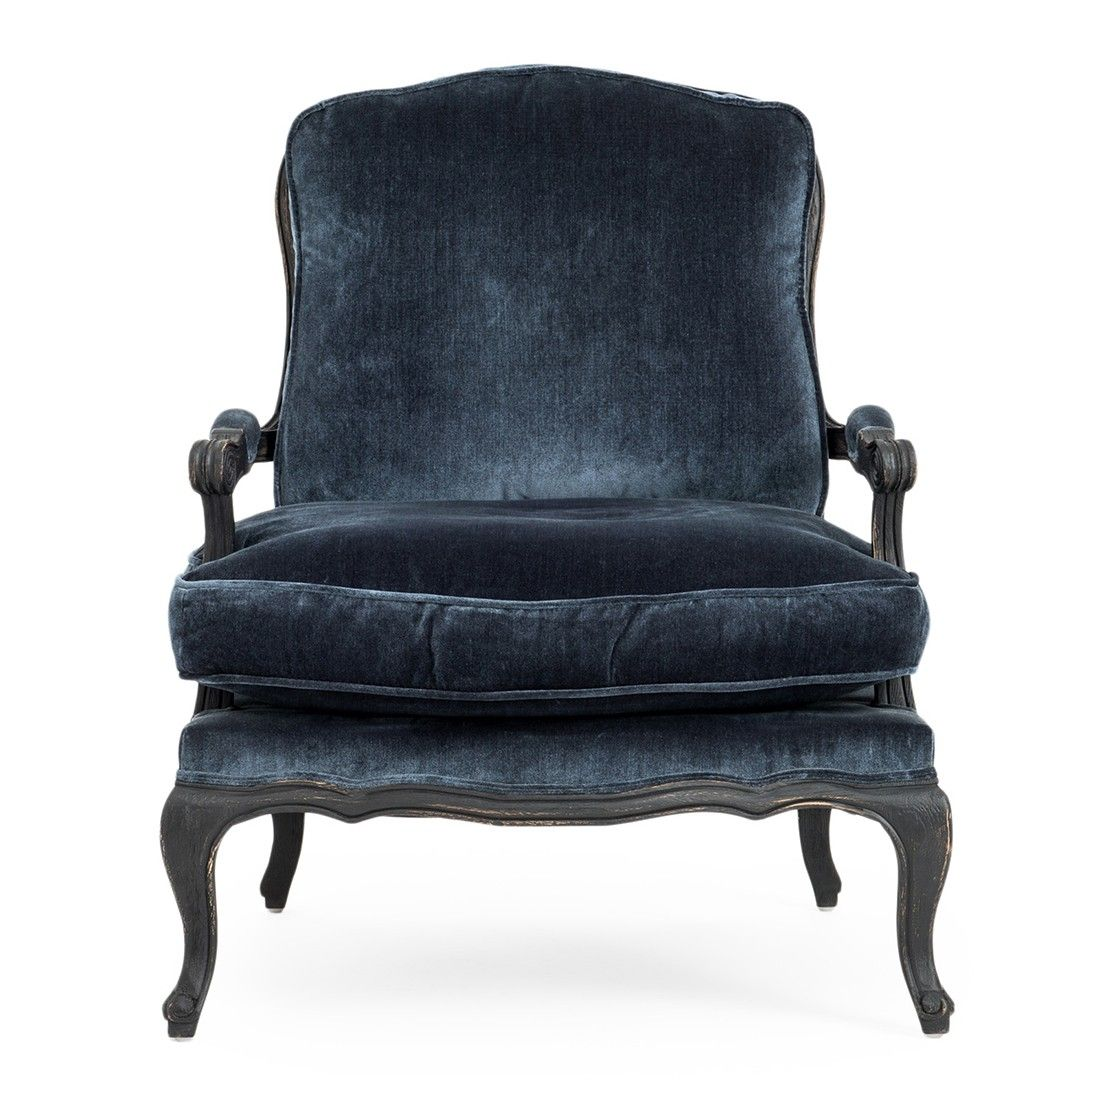 Best Accent Chairs Blue Bodine Stylish Chairs Accent Chairs 640 x 480